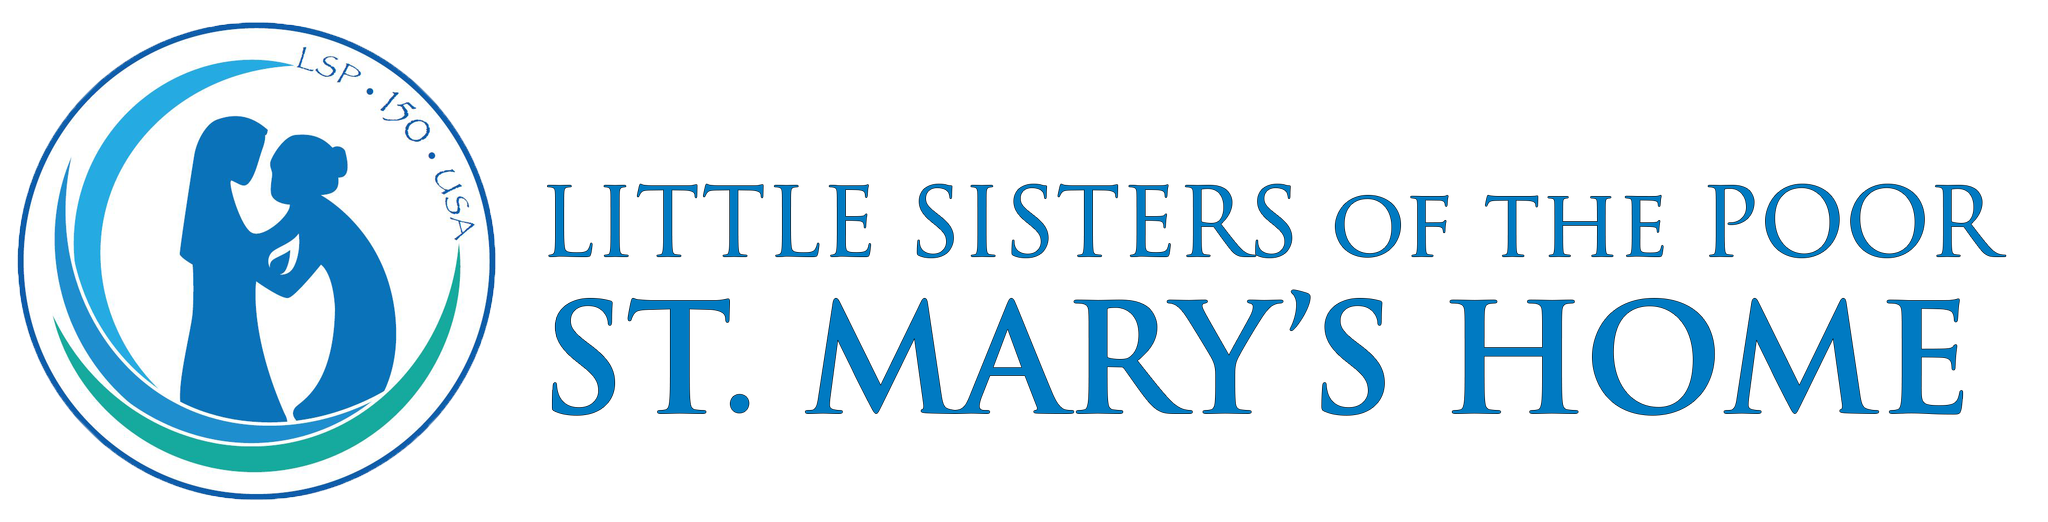 Little Sisters of the Poor Chicago